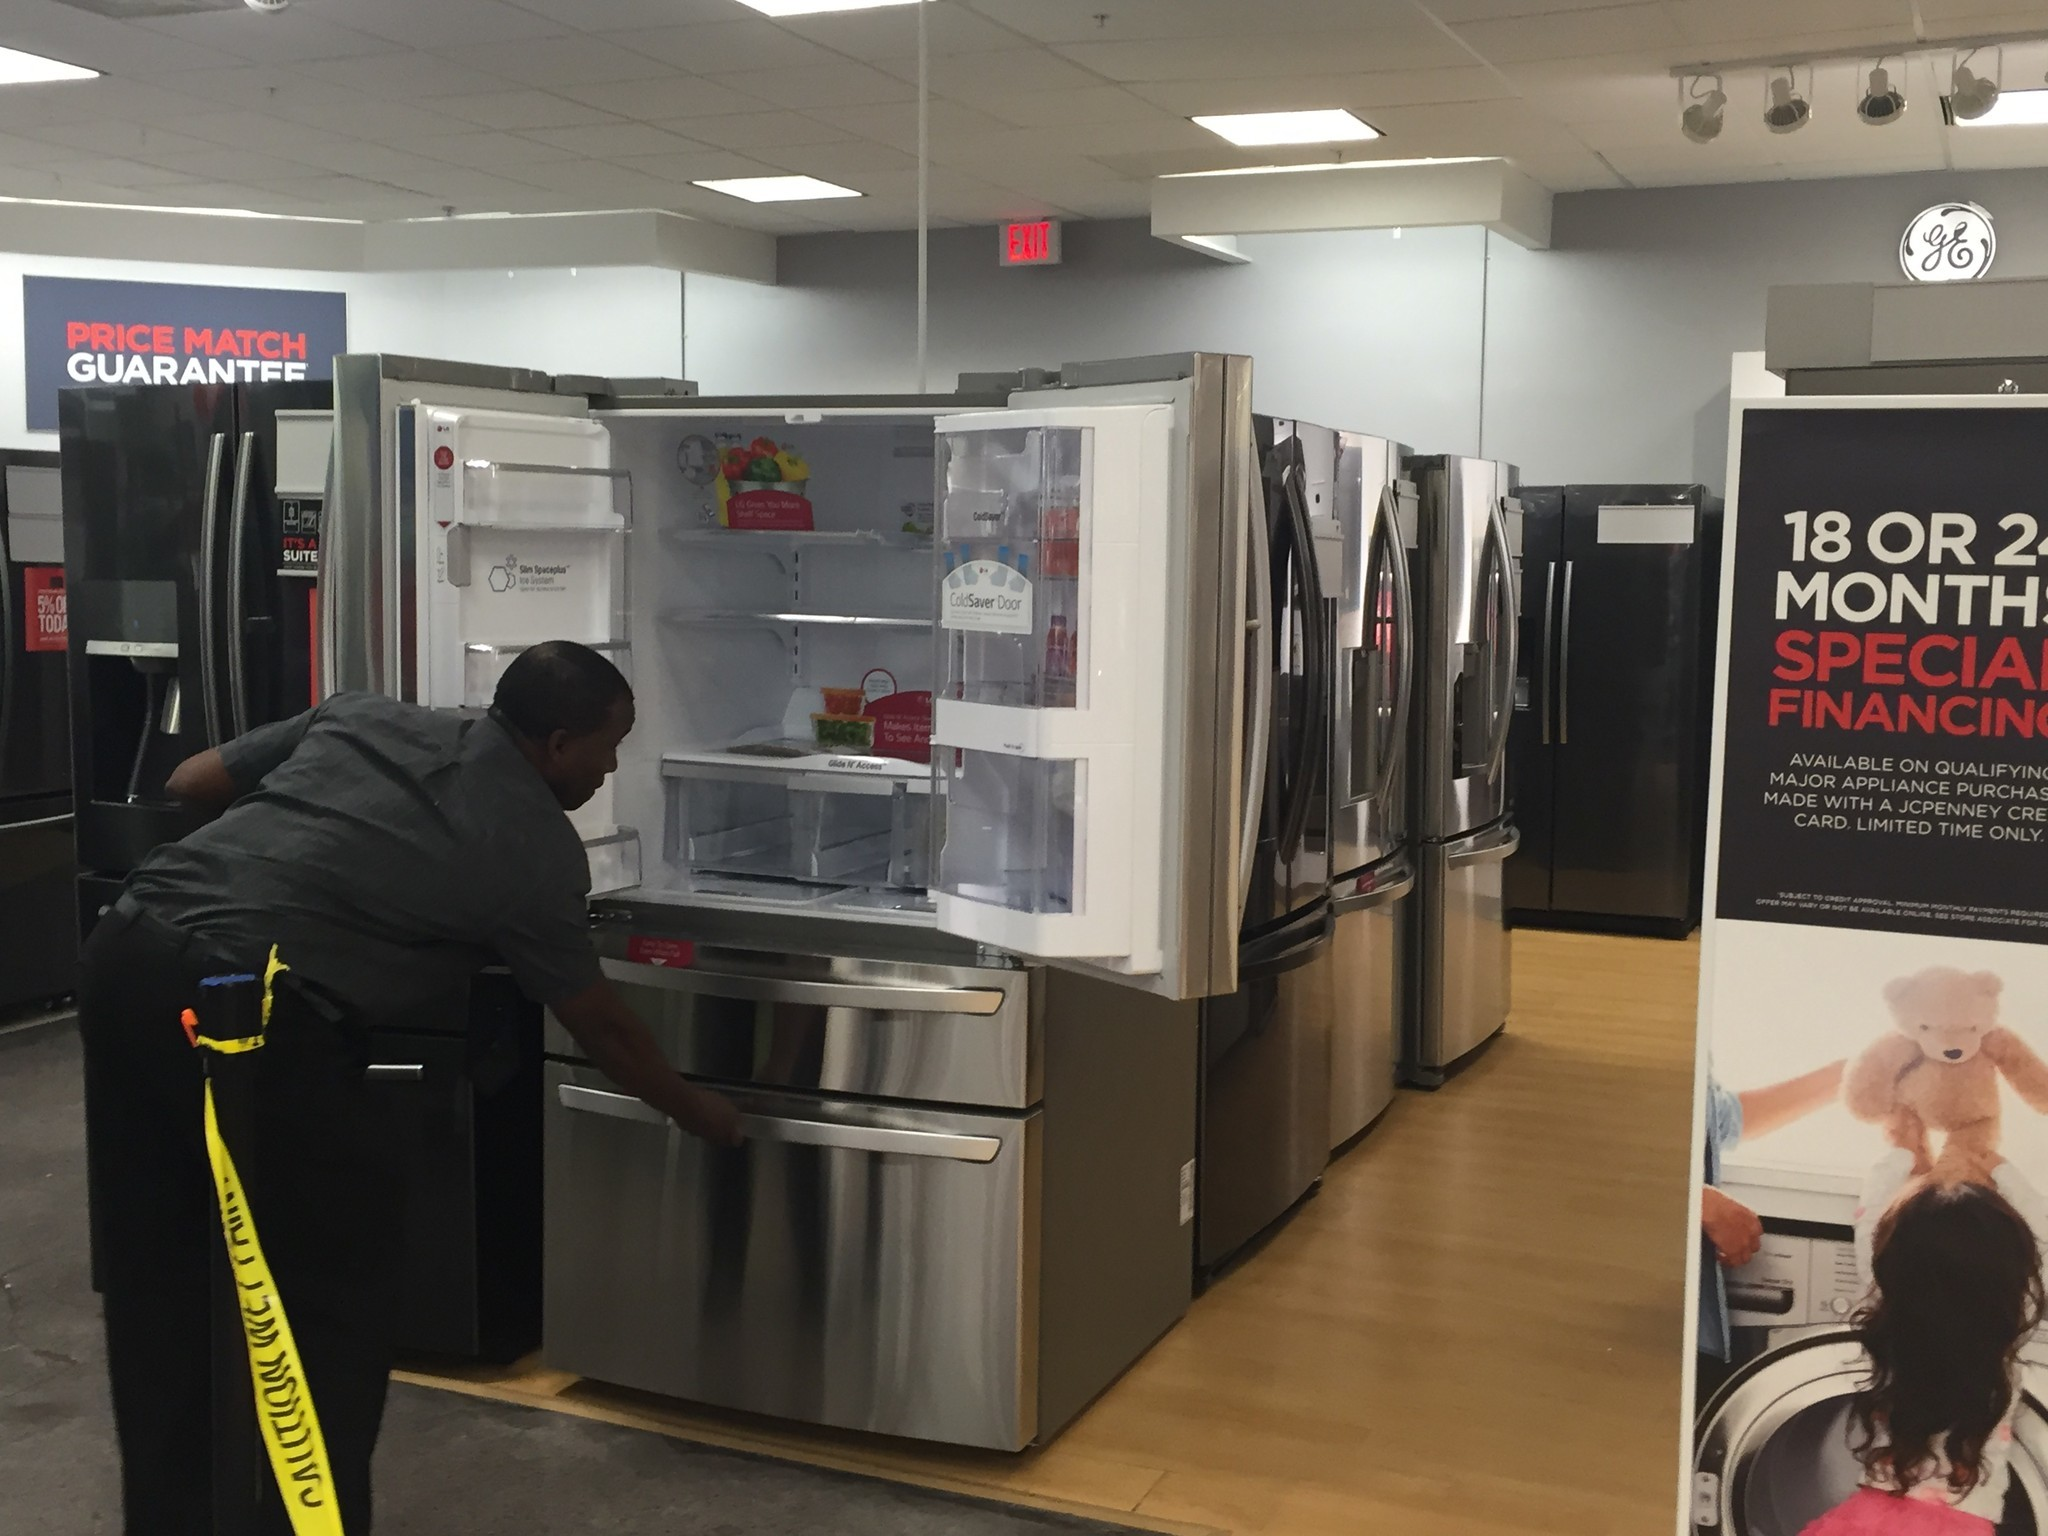 J C Penney Adding Appliances To Its Offerings At 4 S